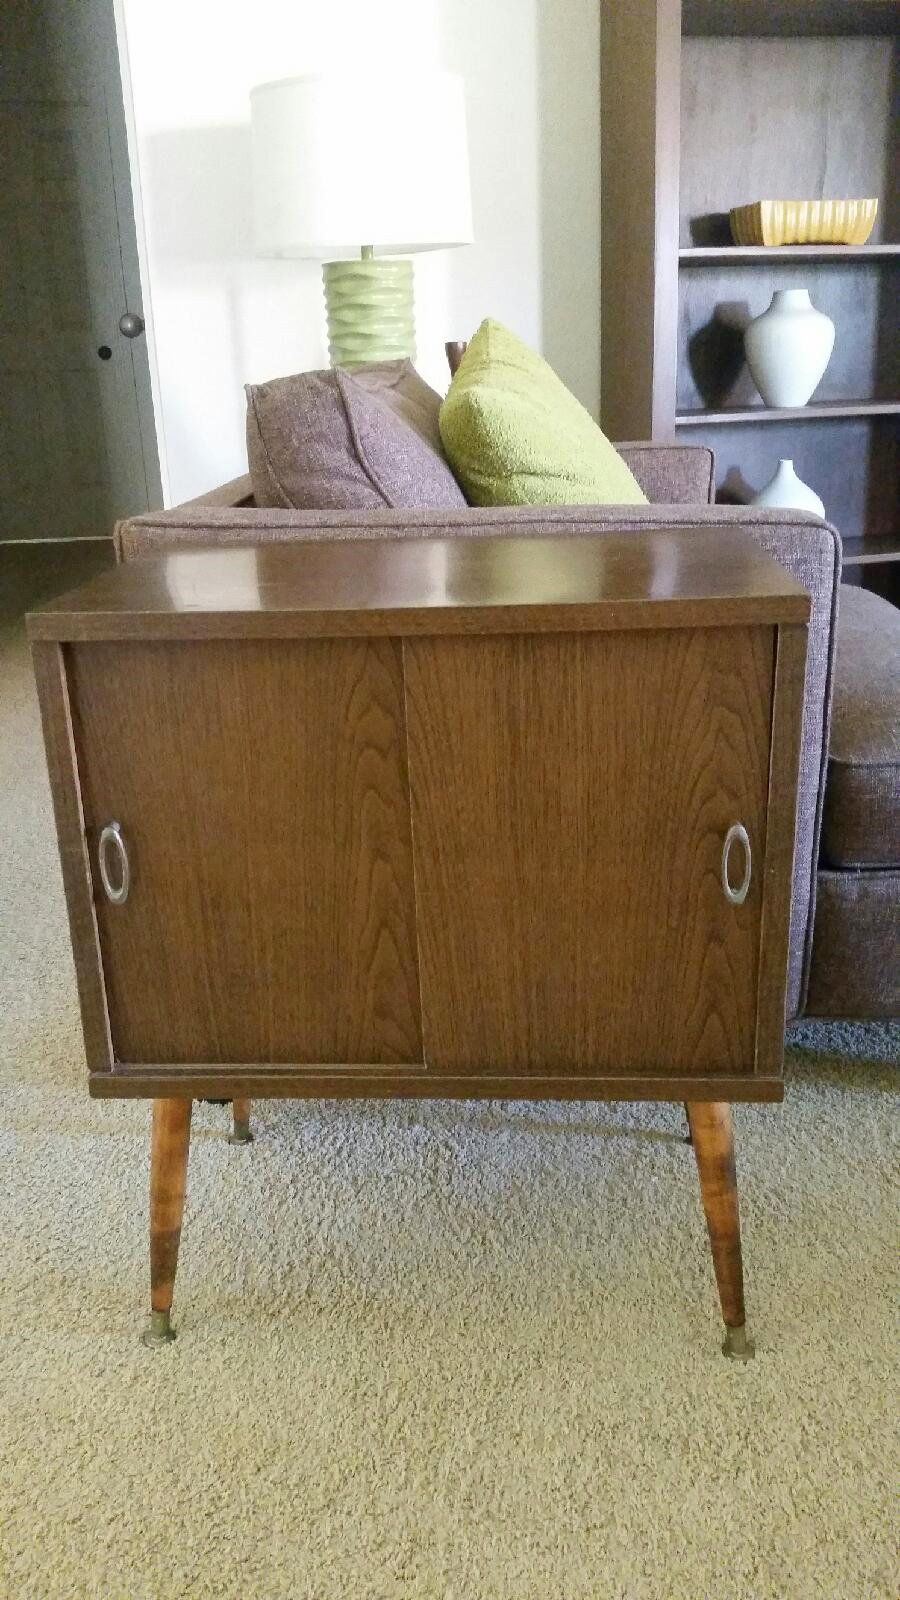 Mid century vintage record cabinet  | Ernie's Mid Century Finds